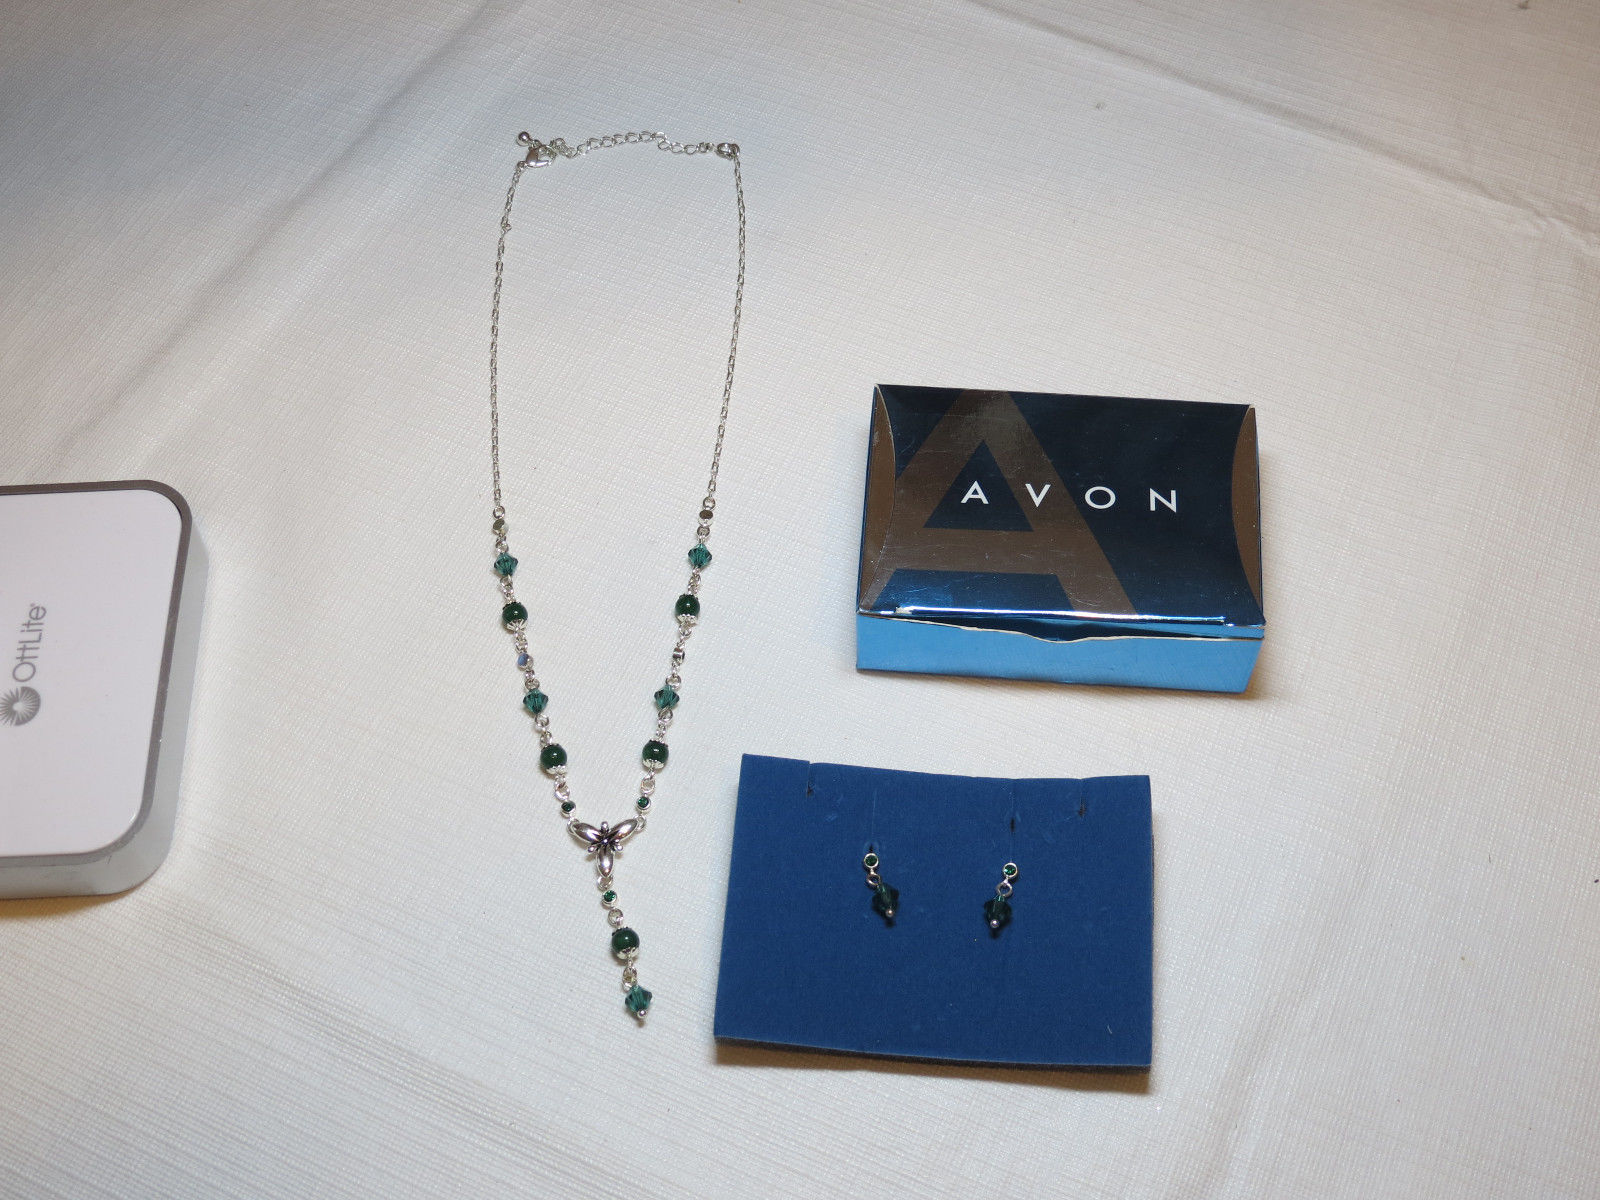 Womens Avon Shades of Brights Y Necklace & Earrings gift set grn F3194621 NIB;;